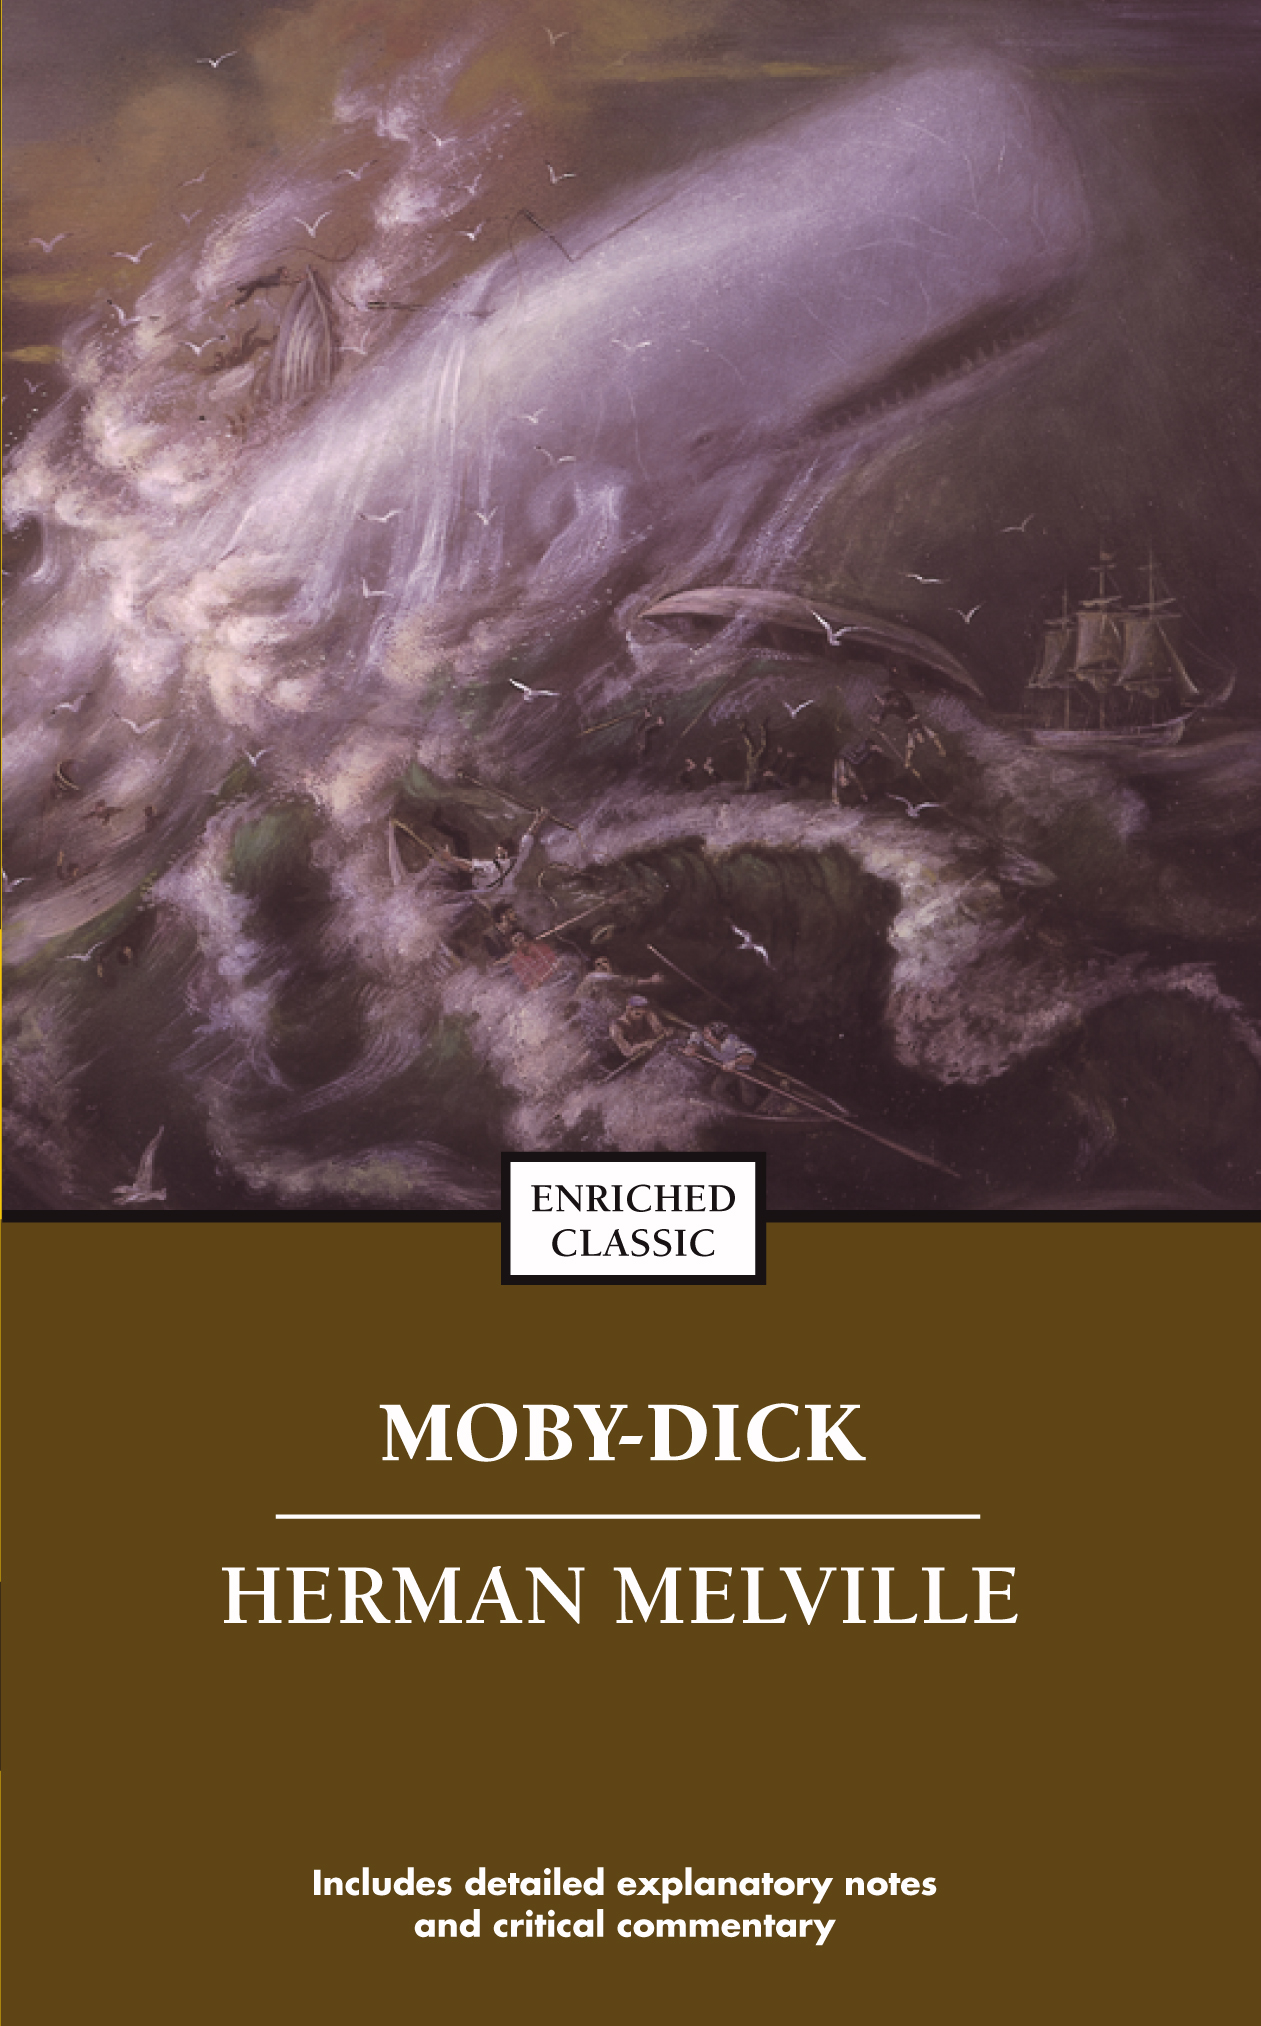 Book Cover Image (jpg): Moby-Dick